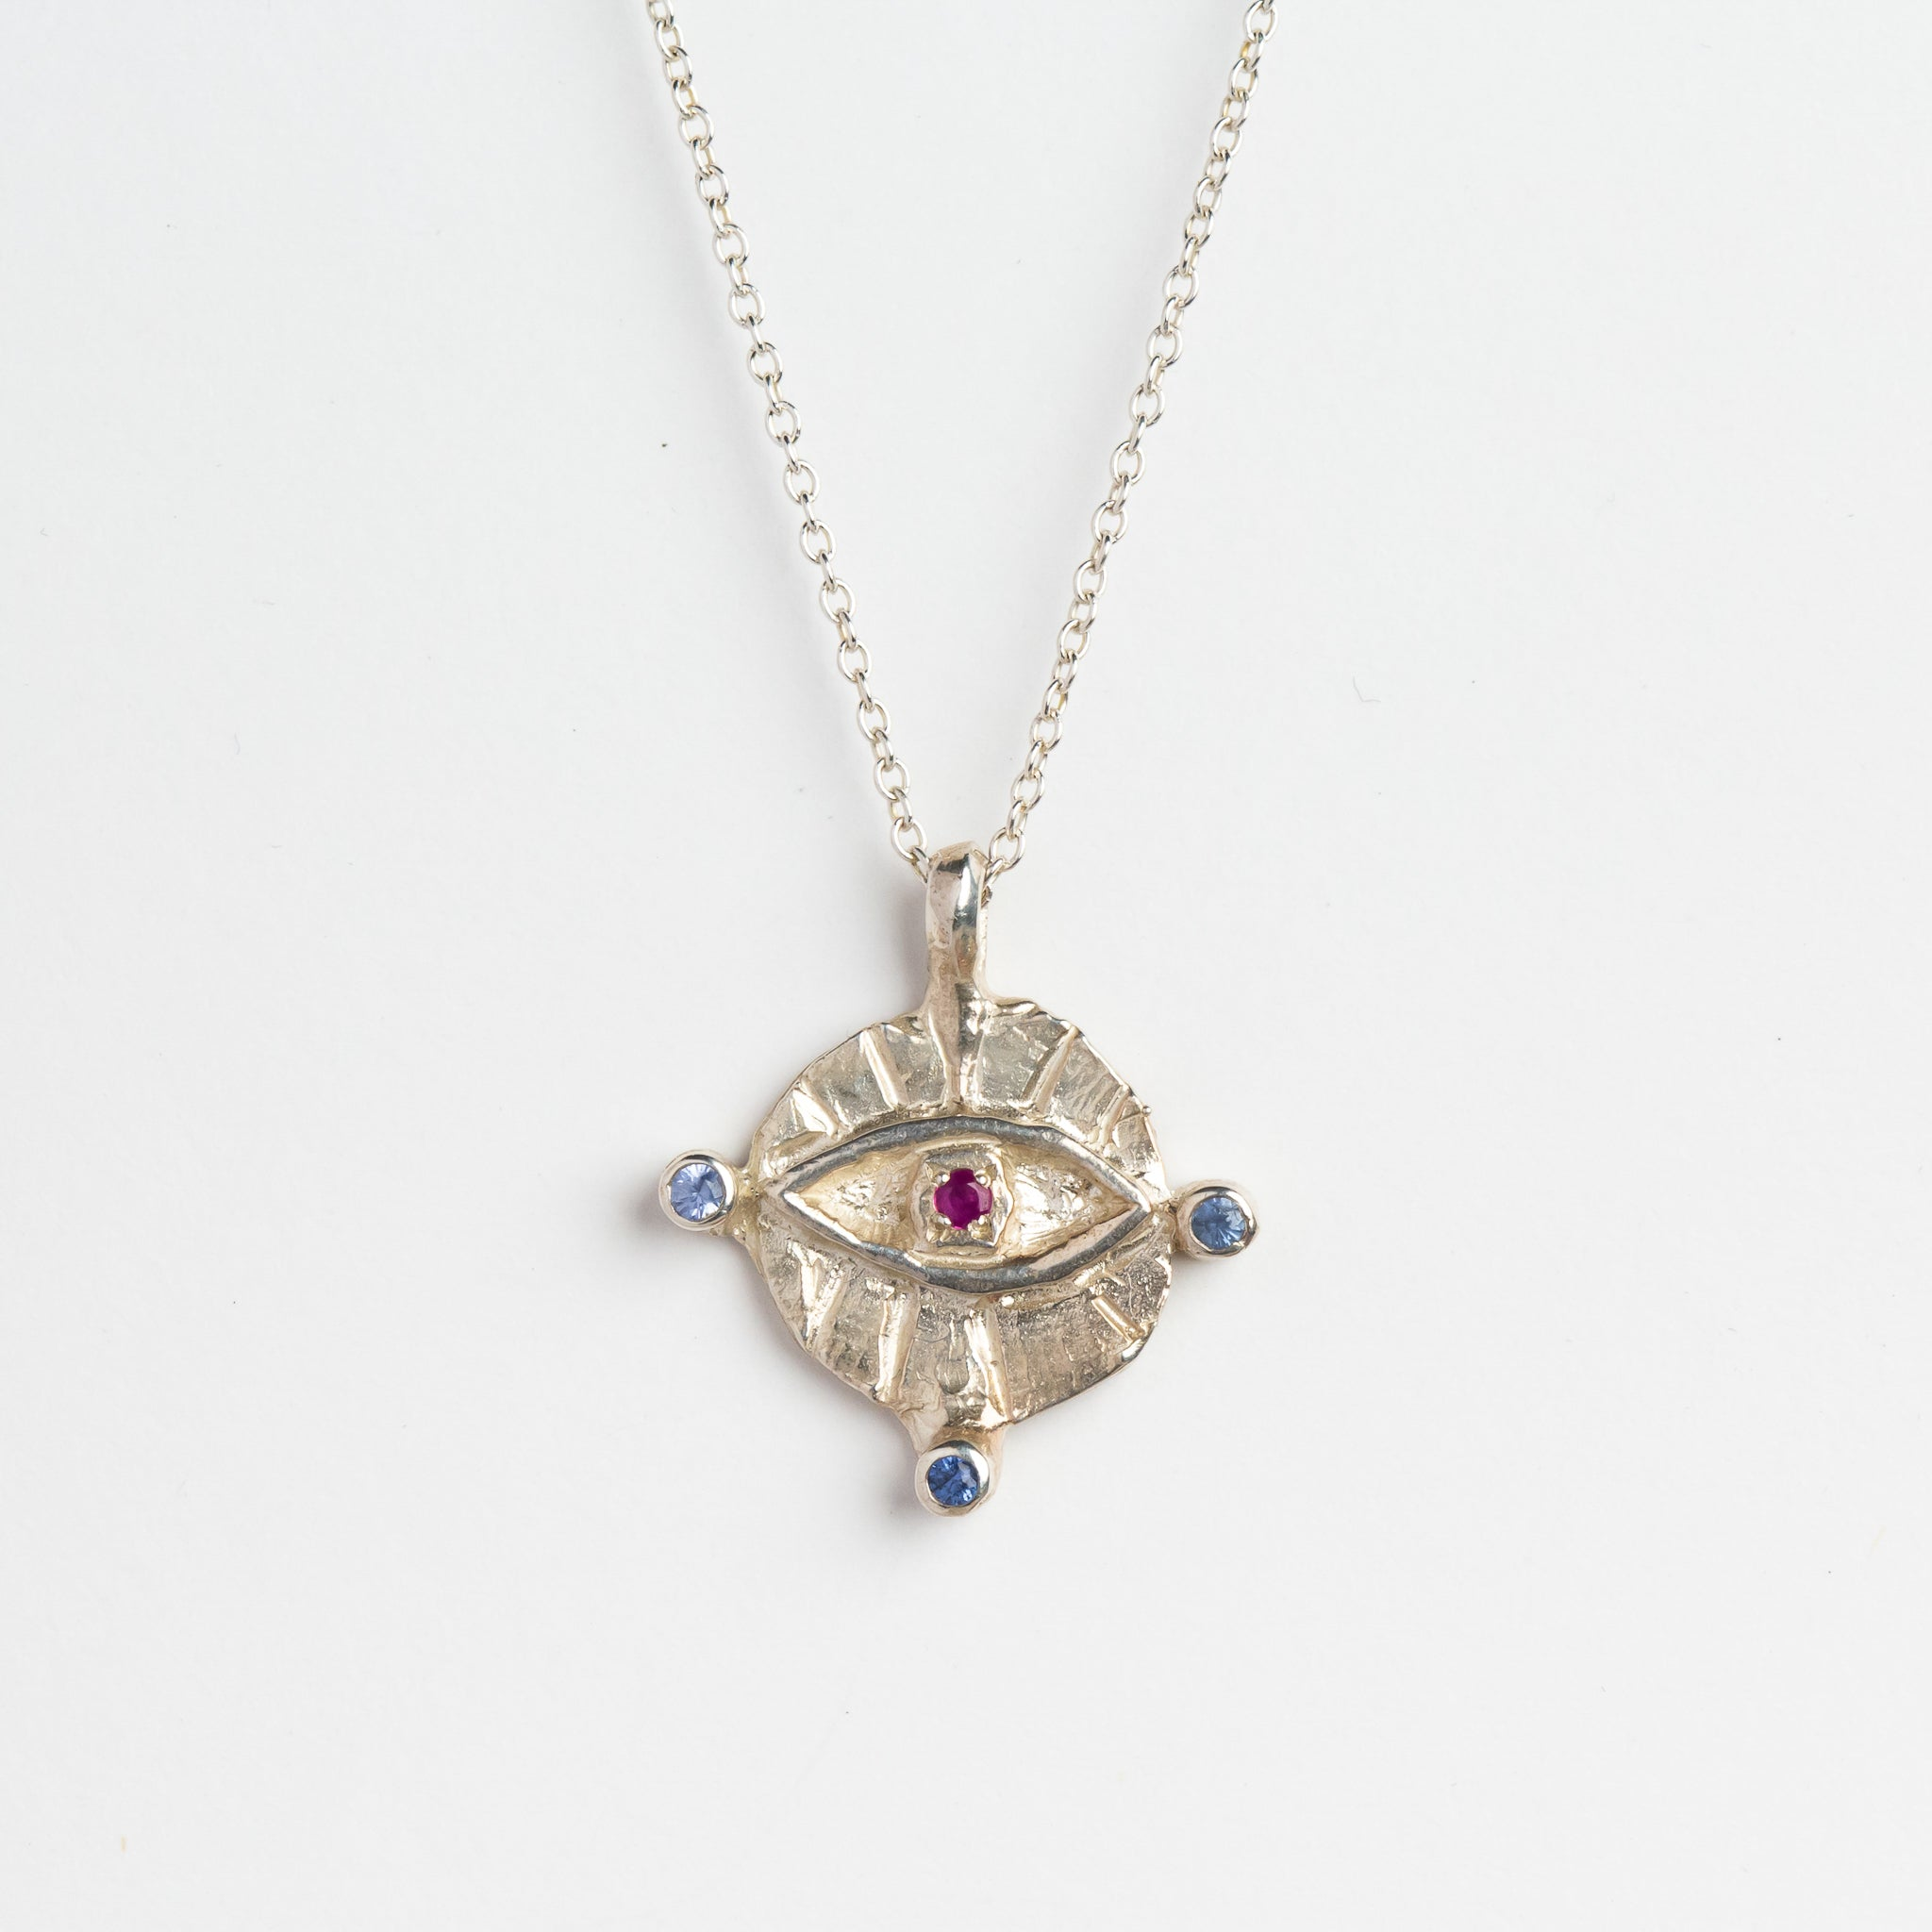 Pink blue and green ceylon sapphires, in silver eye pendant on silver chain, custom bespoke handmade jewellery